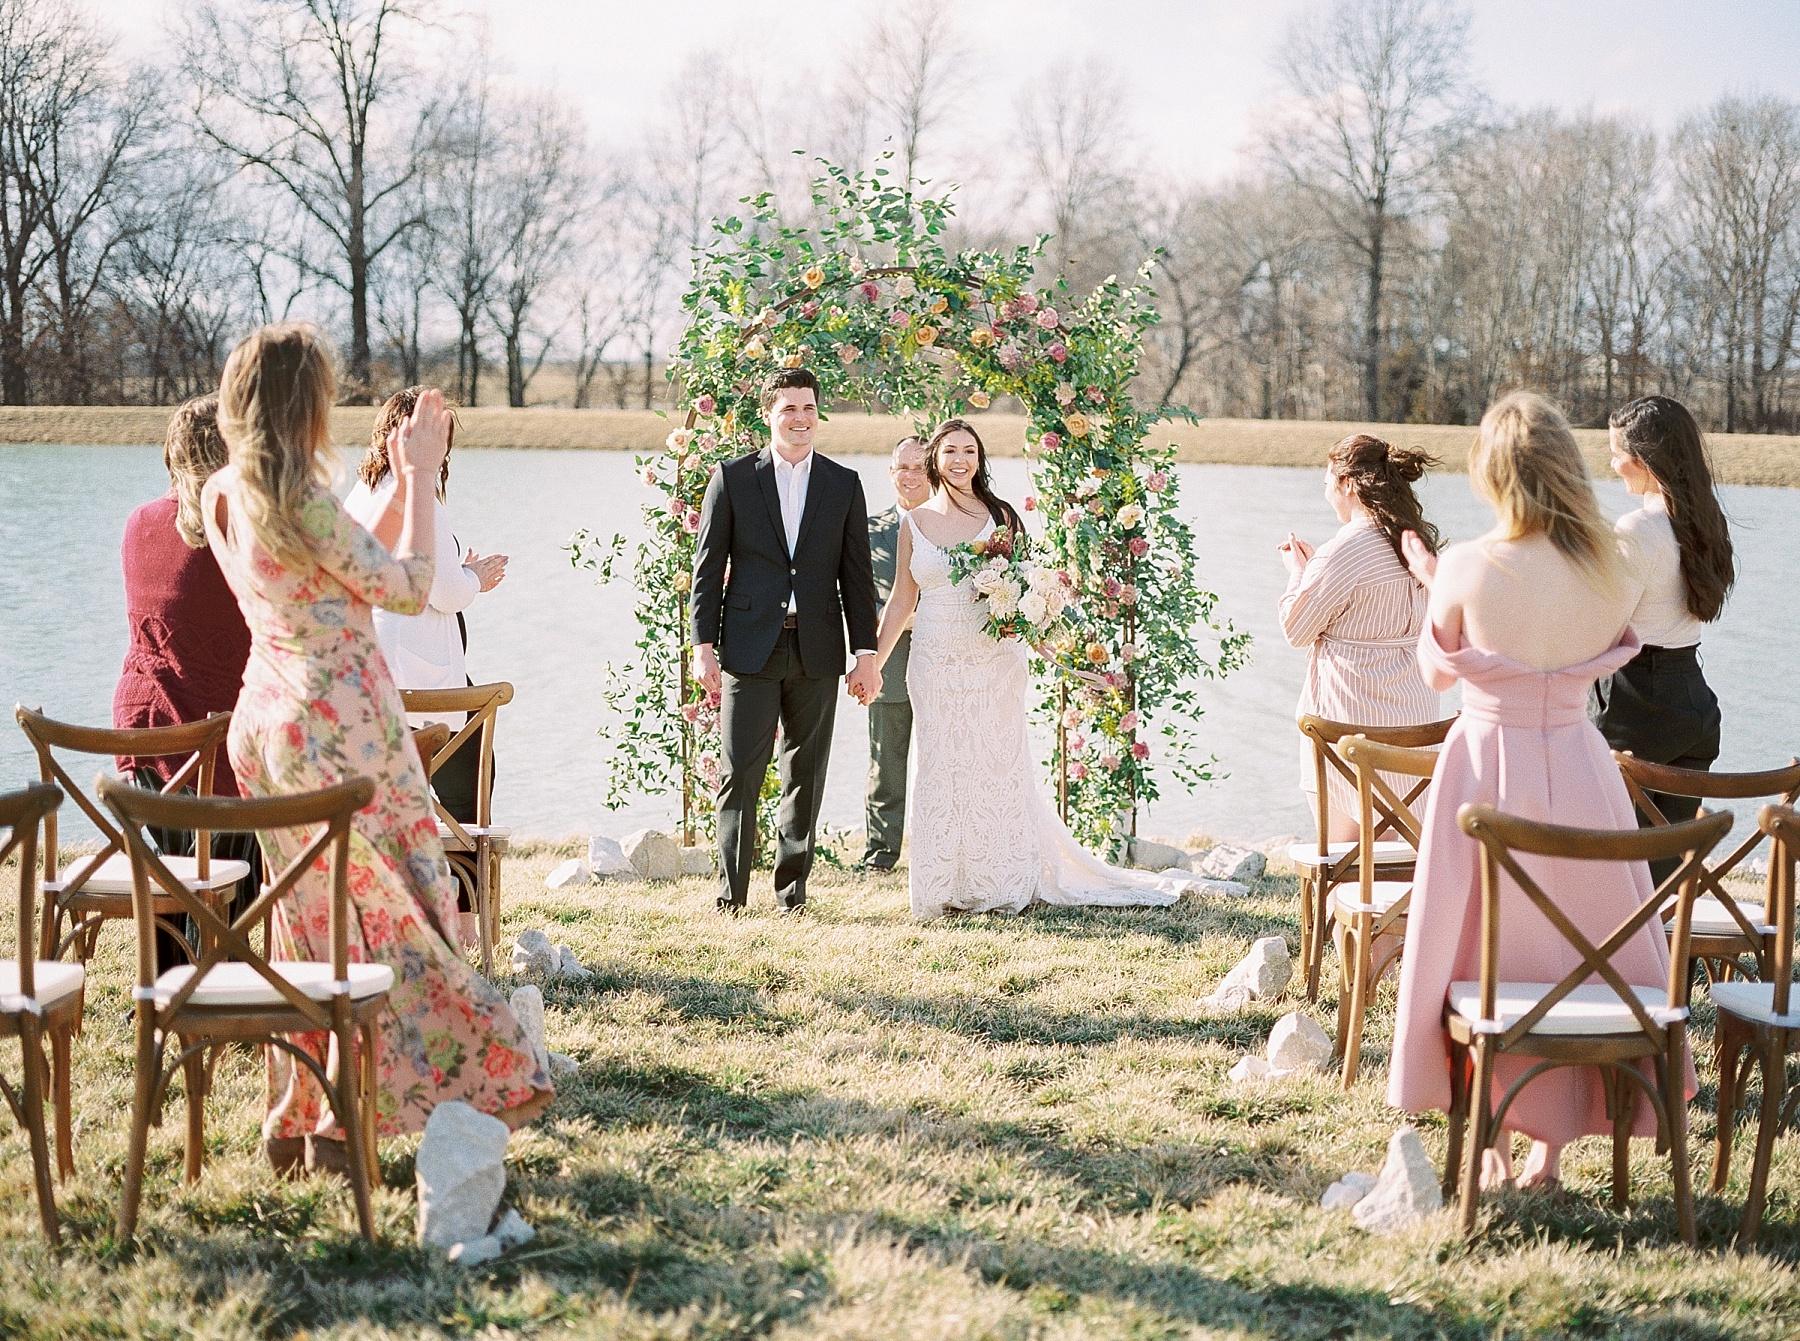 Lakeside Sunset Wedding with Magnificent Abundance of Blooms at Emerson Fields by Kelsi Kliethermes Photography Best Missouri and Maui Wedding Photographer_0012.jpg